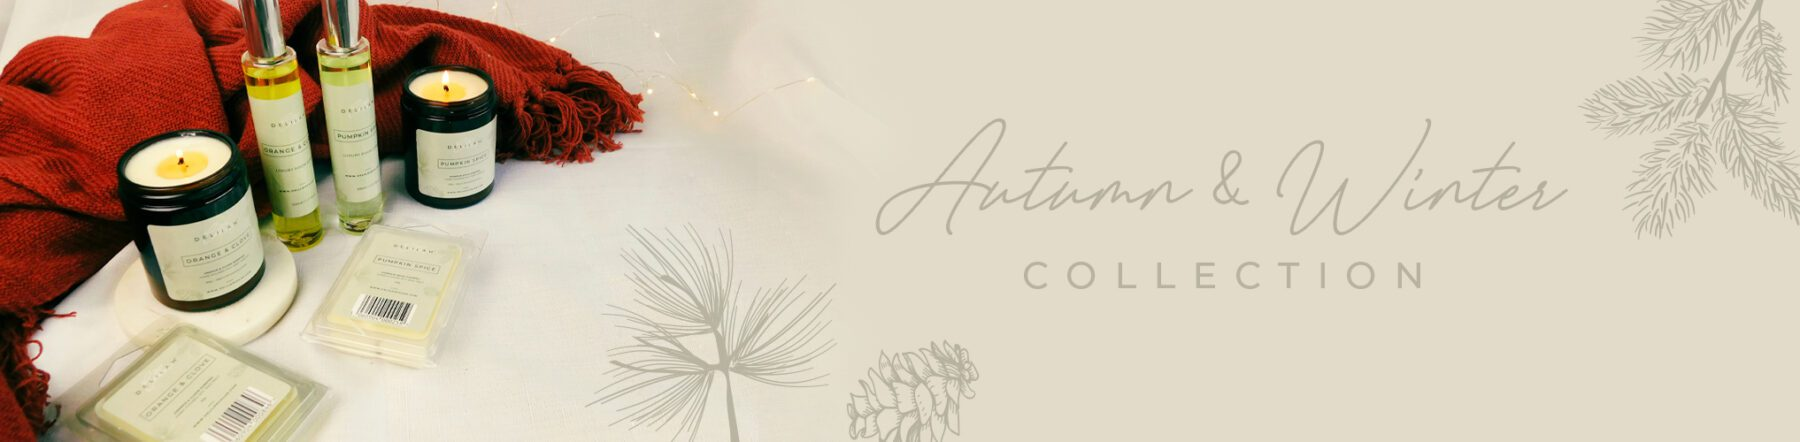 Autumn & Winter Collection by Delilah Chloe, Luxury Home Fragrance, Christmas Candles, Soy Wax Melts